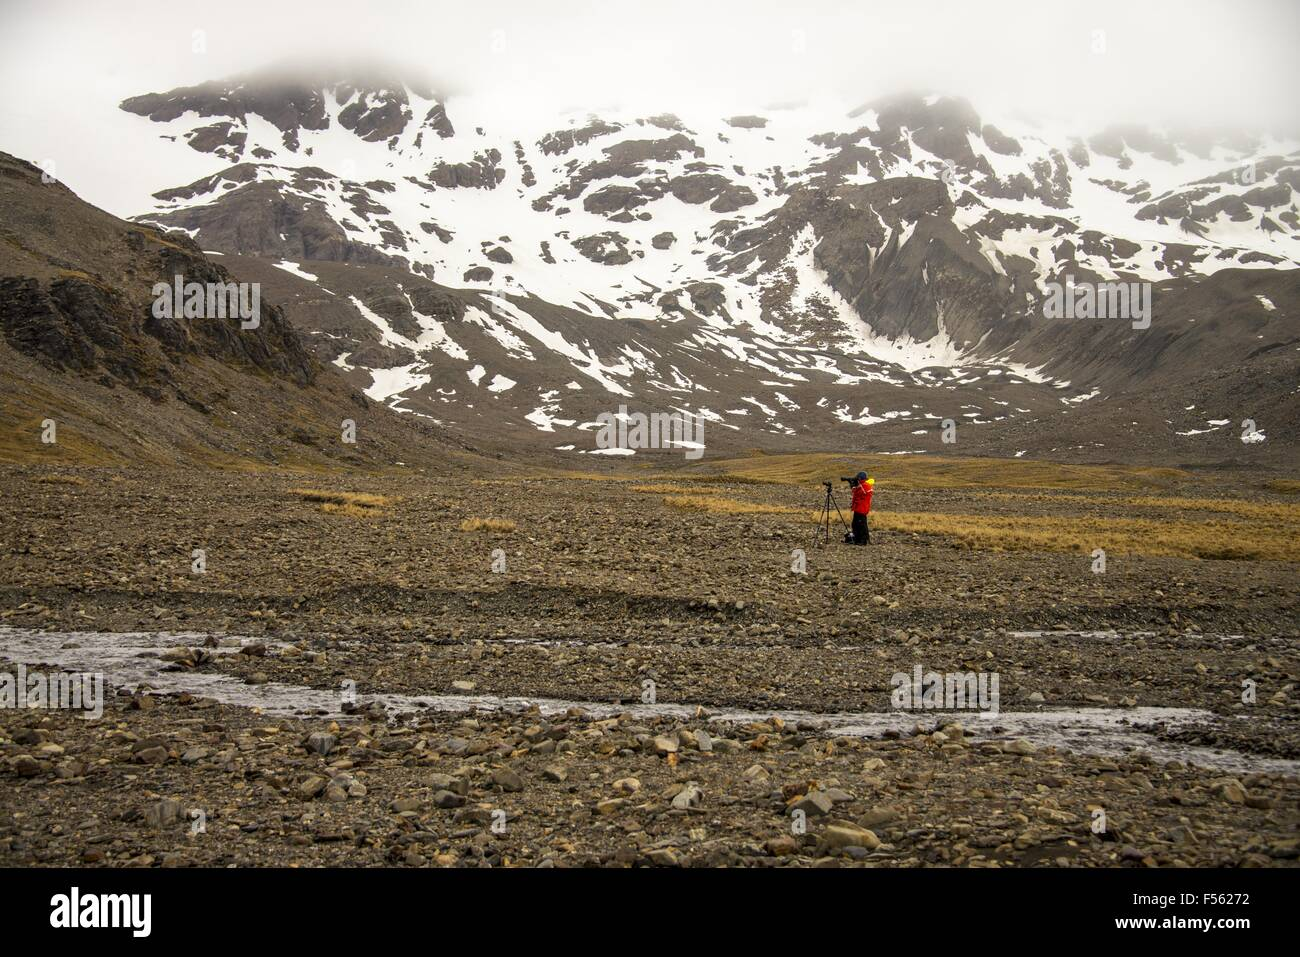 Photographer in South Georgia Island! - Stock Image